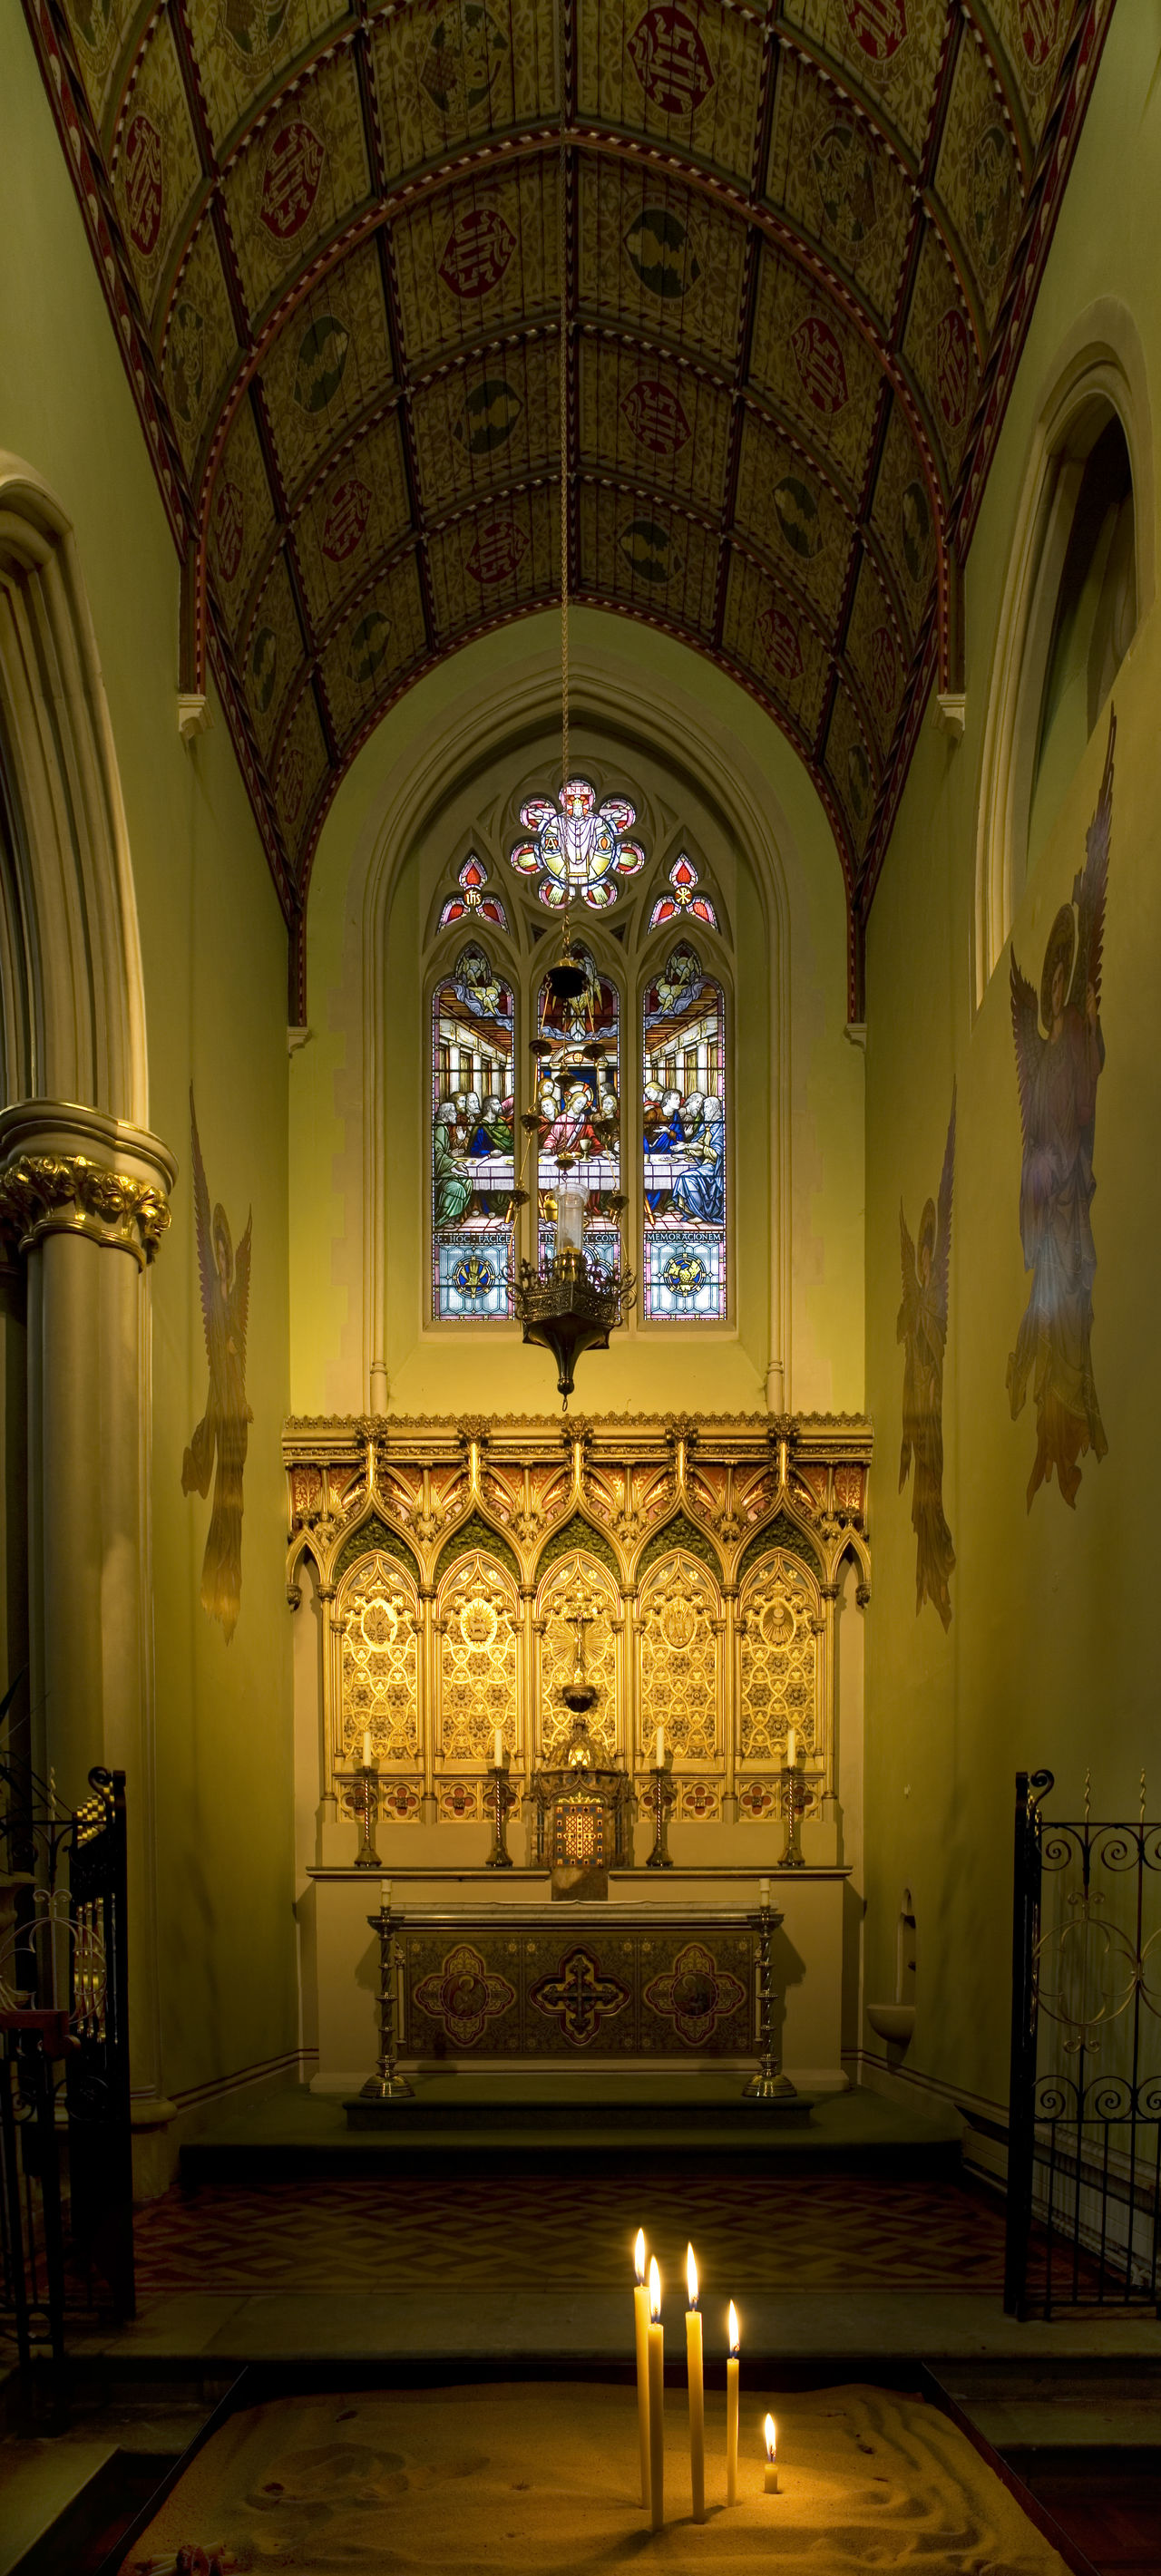 Candels Cathedral Catholic Church Chapel Mixed Lighting Mixed Lights Portsmouth St John's Cathedral Stained Glass Stained Glass Window Vertical Panorama The Architect - 2017 EyeEm Awards